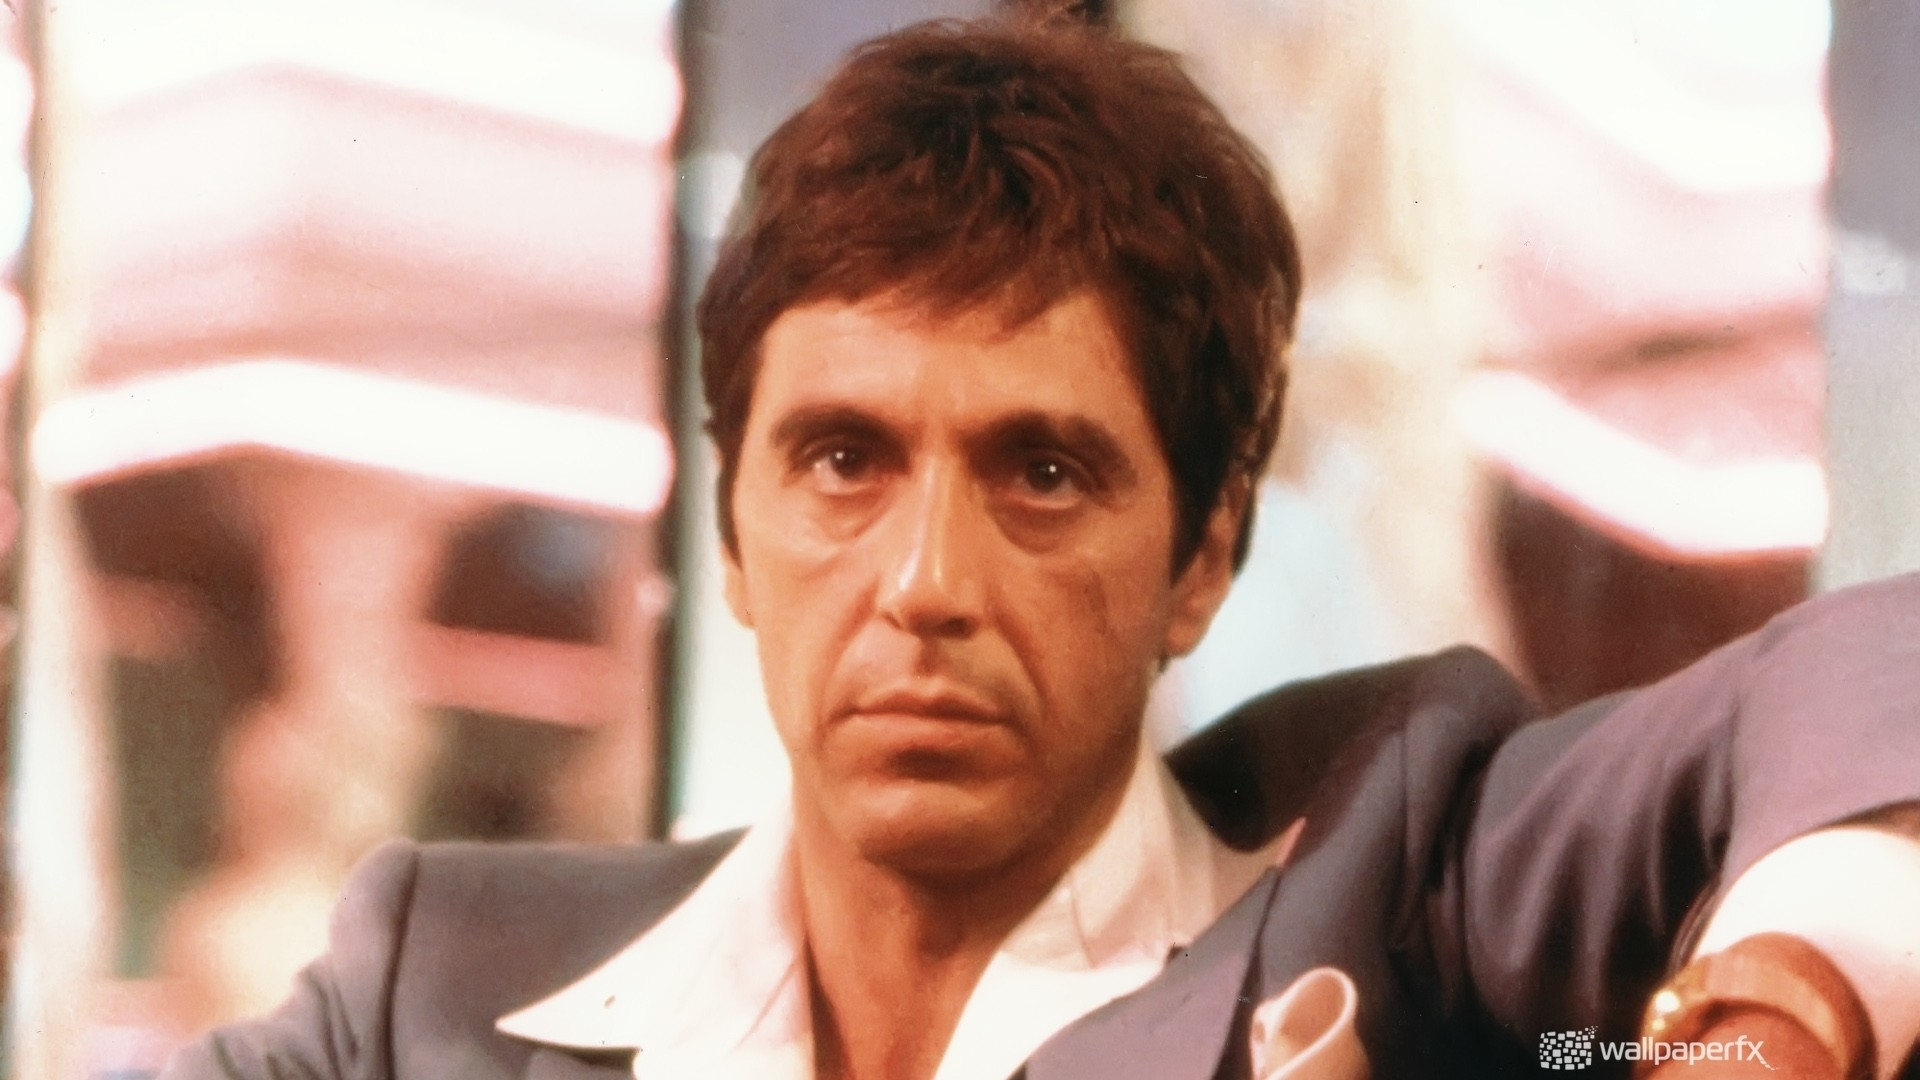 Related Pictures Scarface Tony Montana Cocaine Wallpaper For 320x480 1920x1080